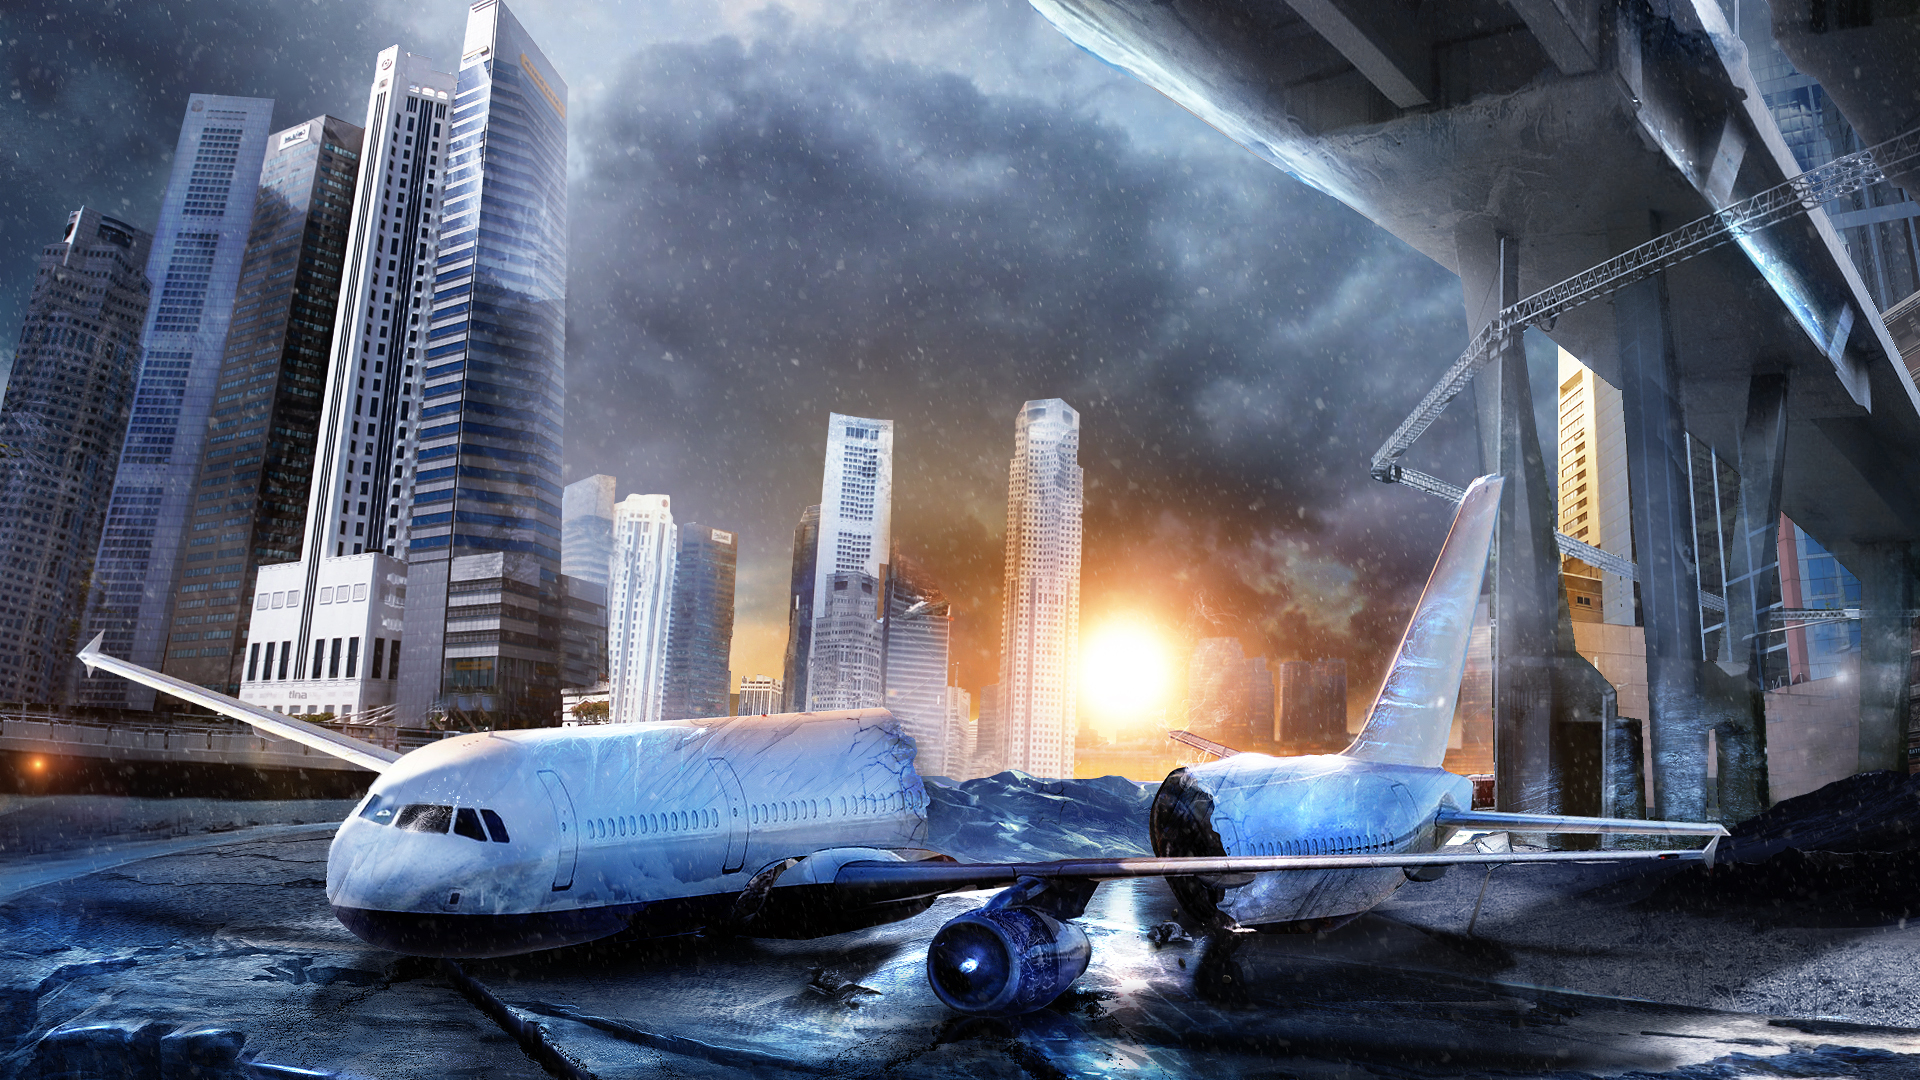 Airplane Buildings Skyscrapers Crash Sunset cities aircraft wallpaper 1920x1080